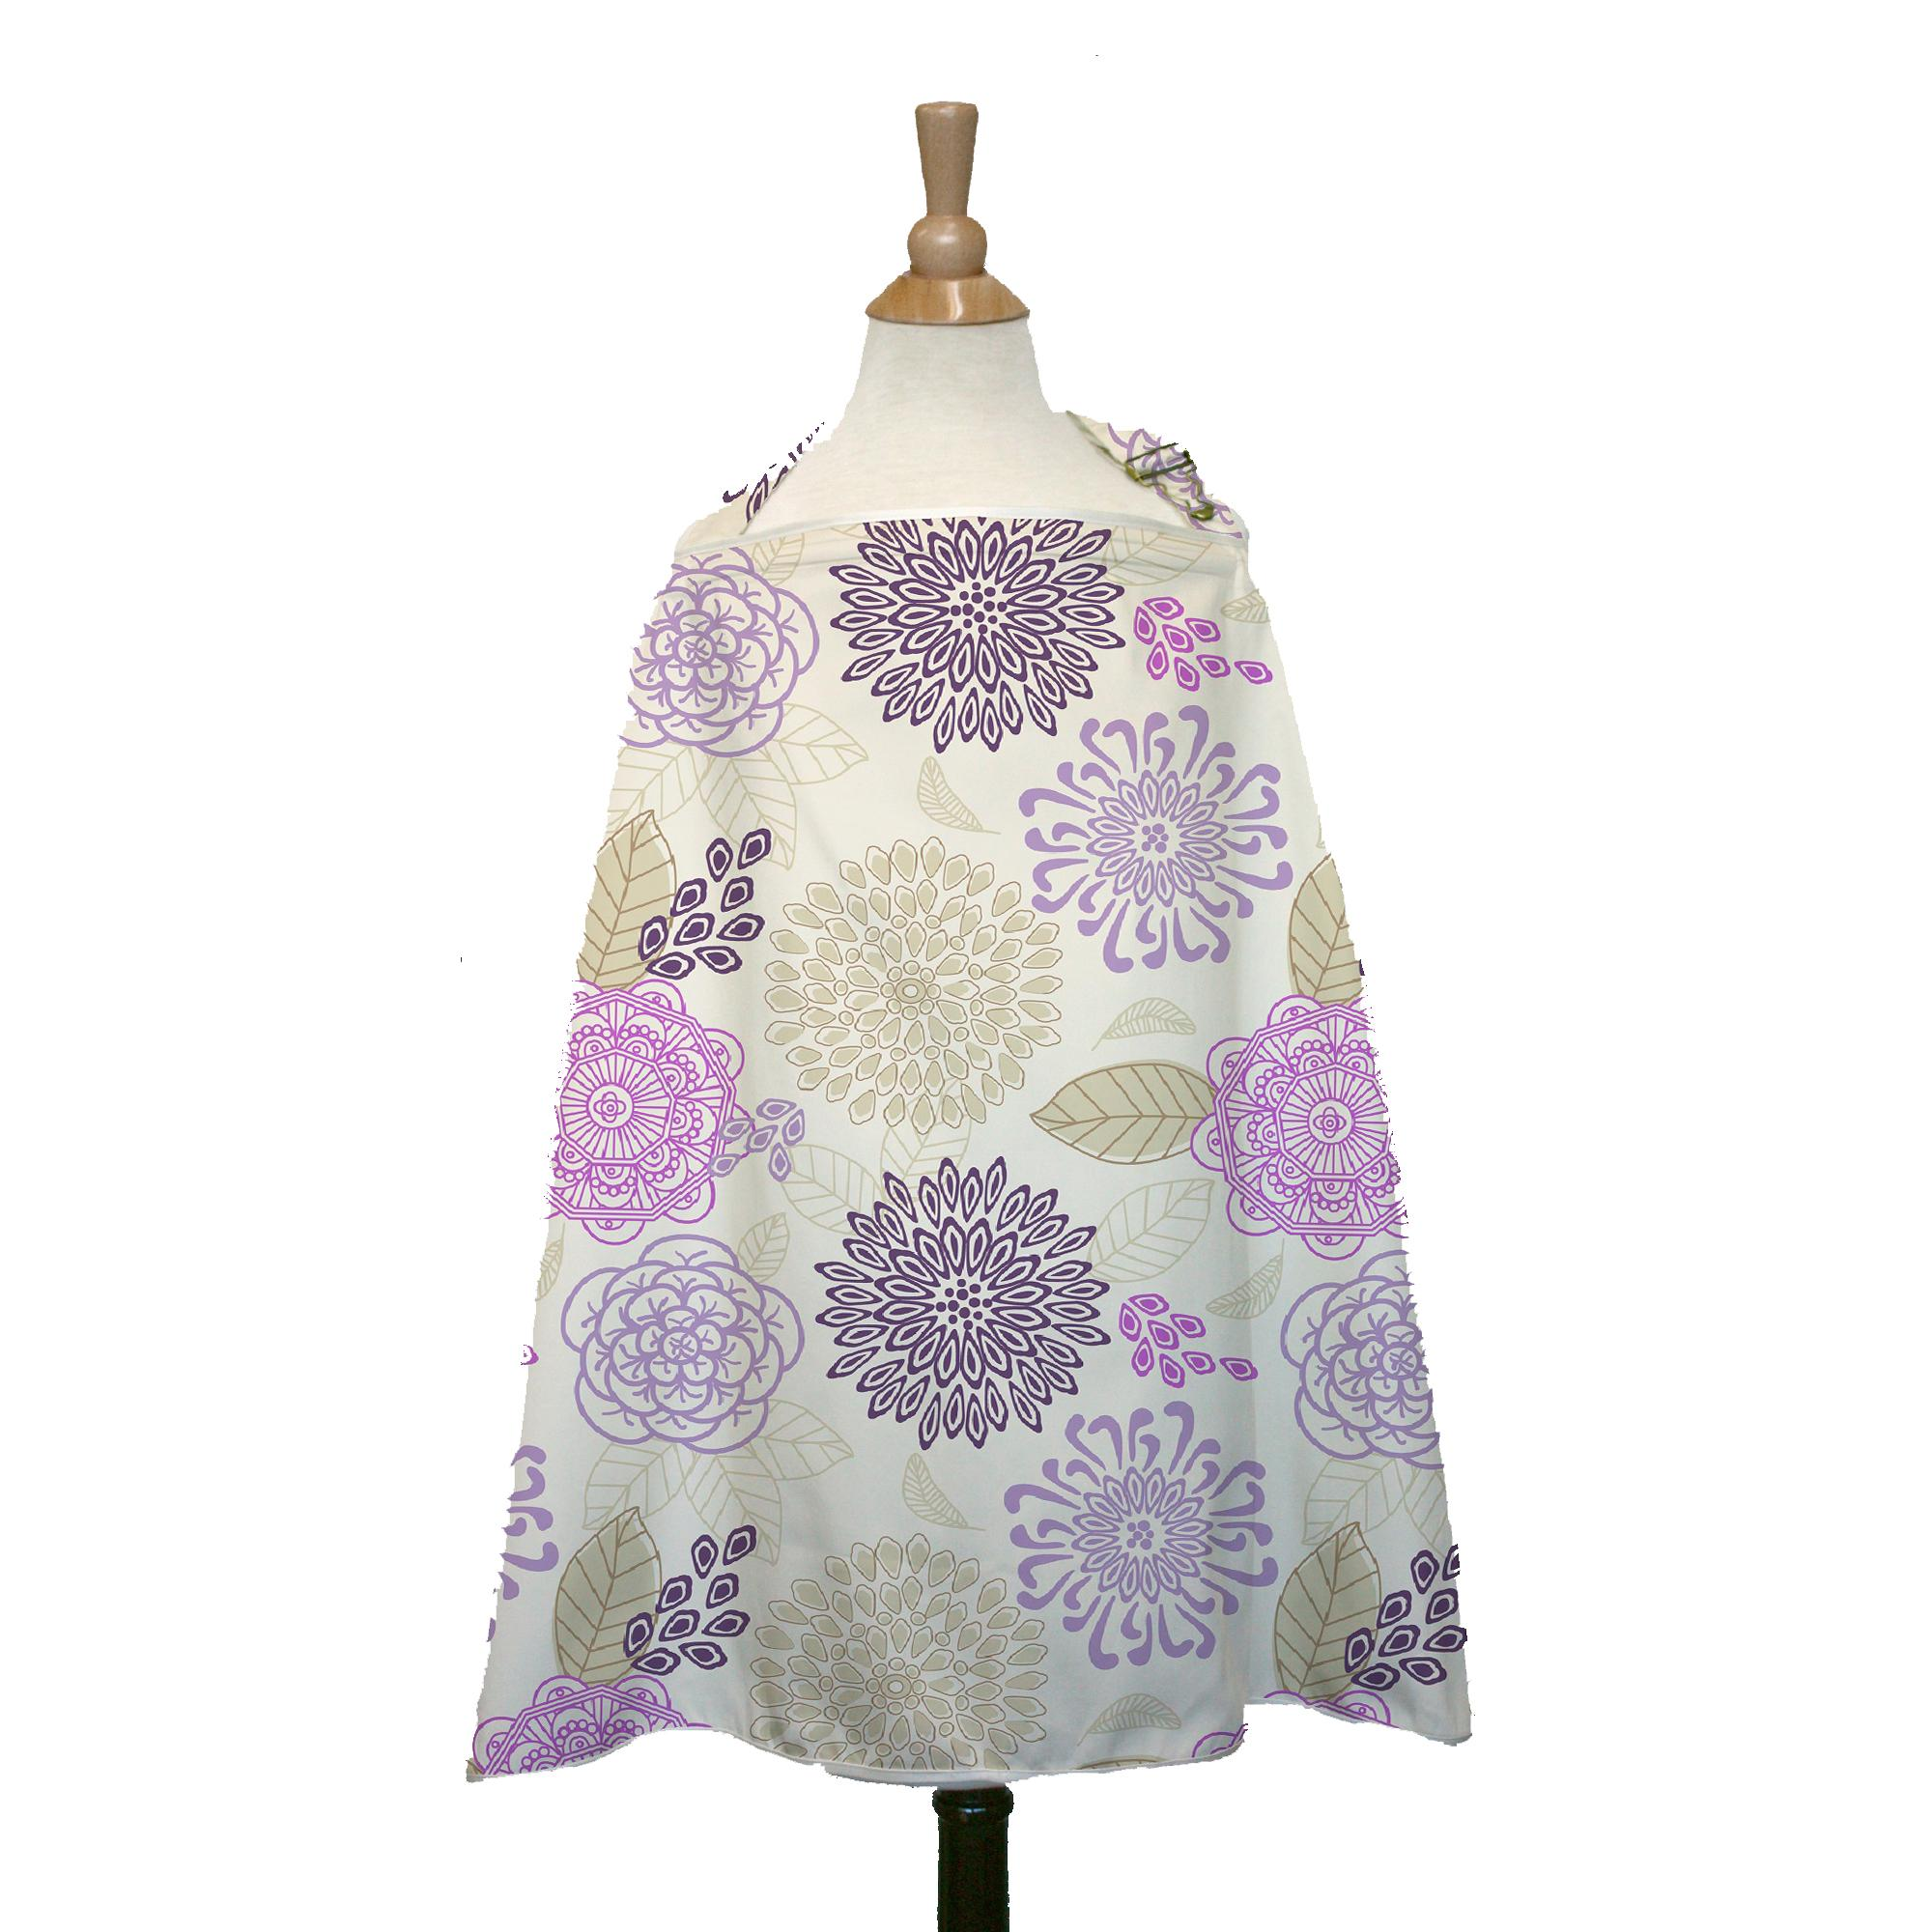 nursing covers breastfeeding covers by the peanut shell nursing covers